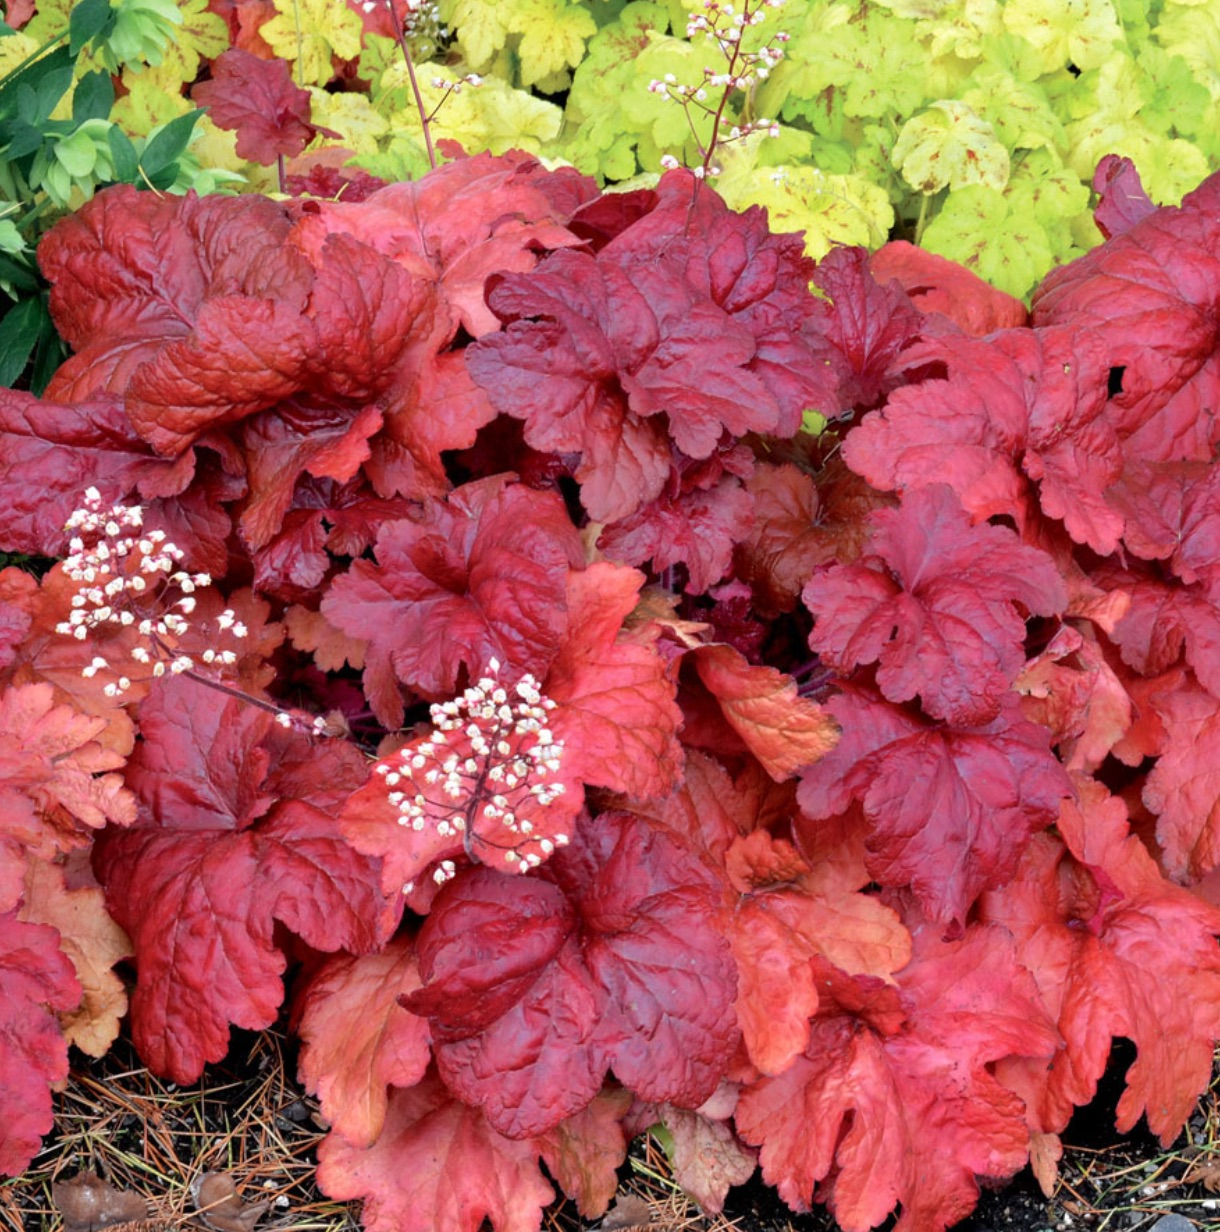 19 Easy to Grow Coral Bells for Colorful Gardens Fire Chief Heuchera #Heuchera #CoralBells #Shade #ShadeGarden #Garden #Gardening #Landscape